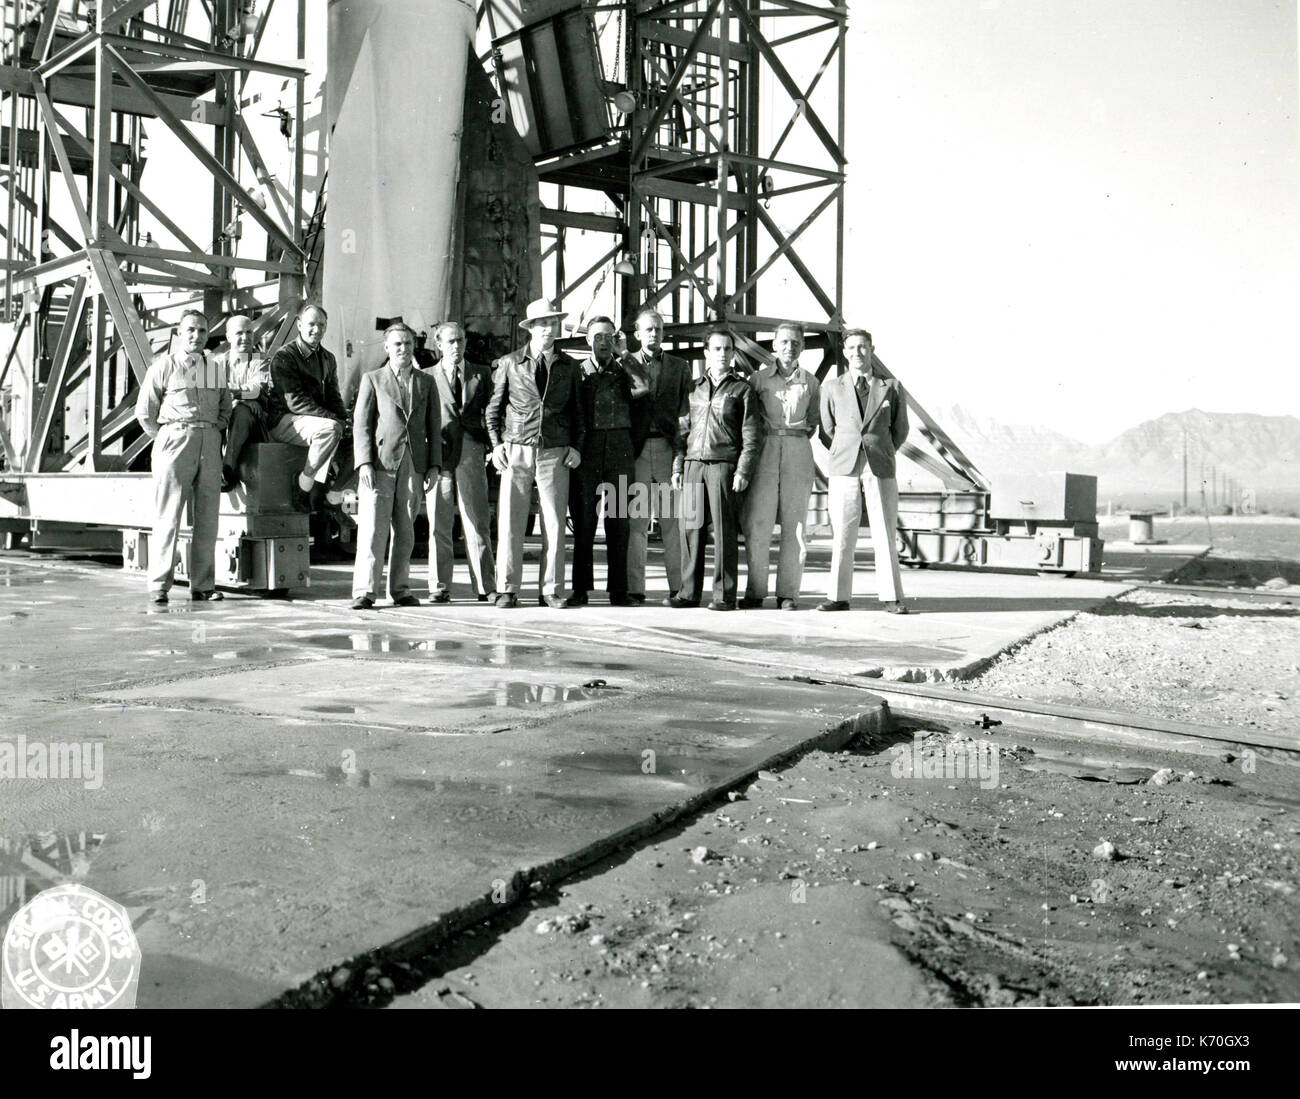 November, 1946, White Sands Proving Grounds - German scientists work on rocket propulsion equipment at White Sands Proving Ground. Left to right are: Werner Rosinski, Theo Poppel, Heinz Scharnowski, Max Nowak, Kurt Lindner, Hanz Huster, Erich Kaschig, Alvin Wittman, Erich Neubert, Albert Zeiler and Hans Gruene. - Stock Image